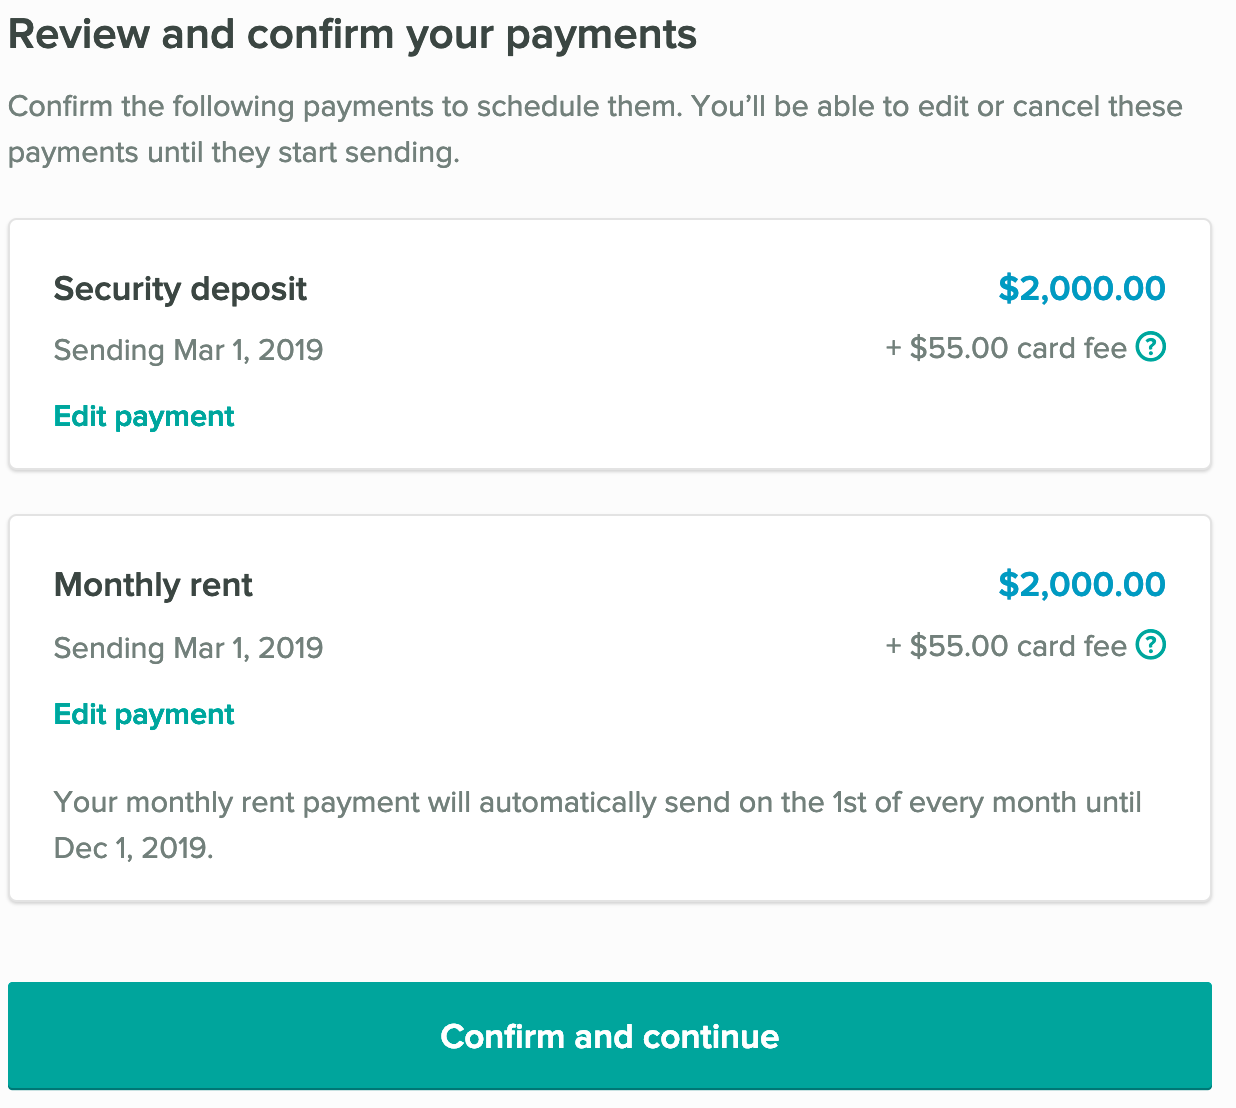 Confirmation of scheduled payments